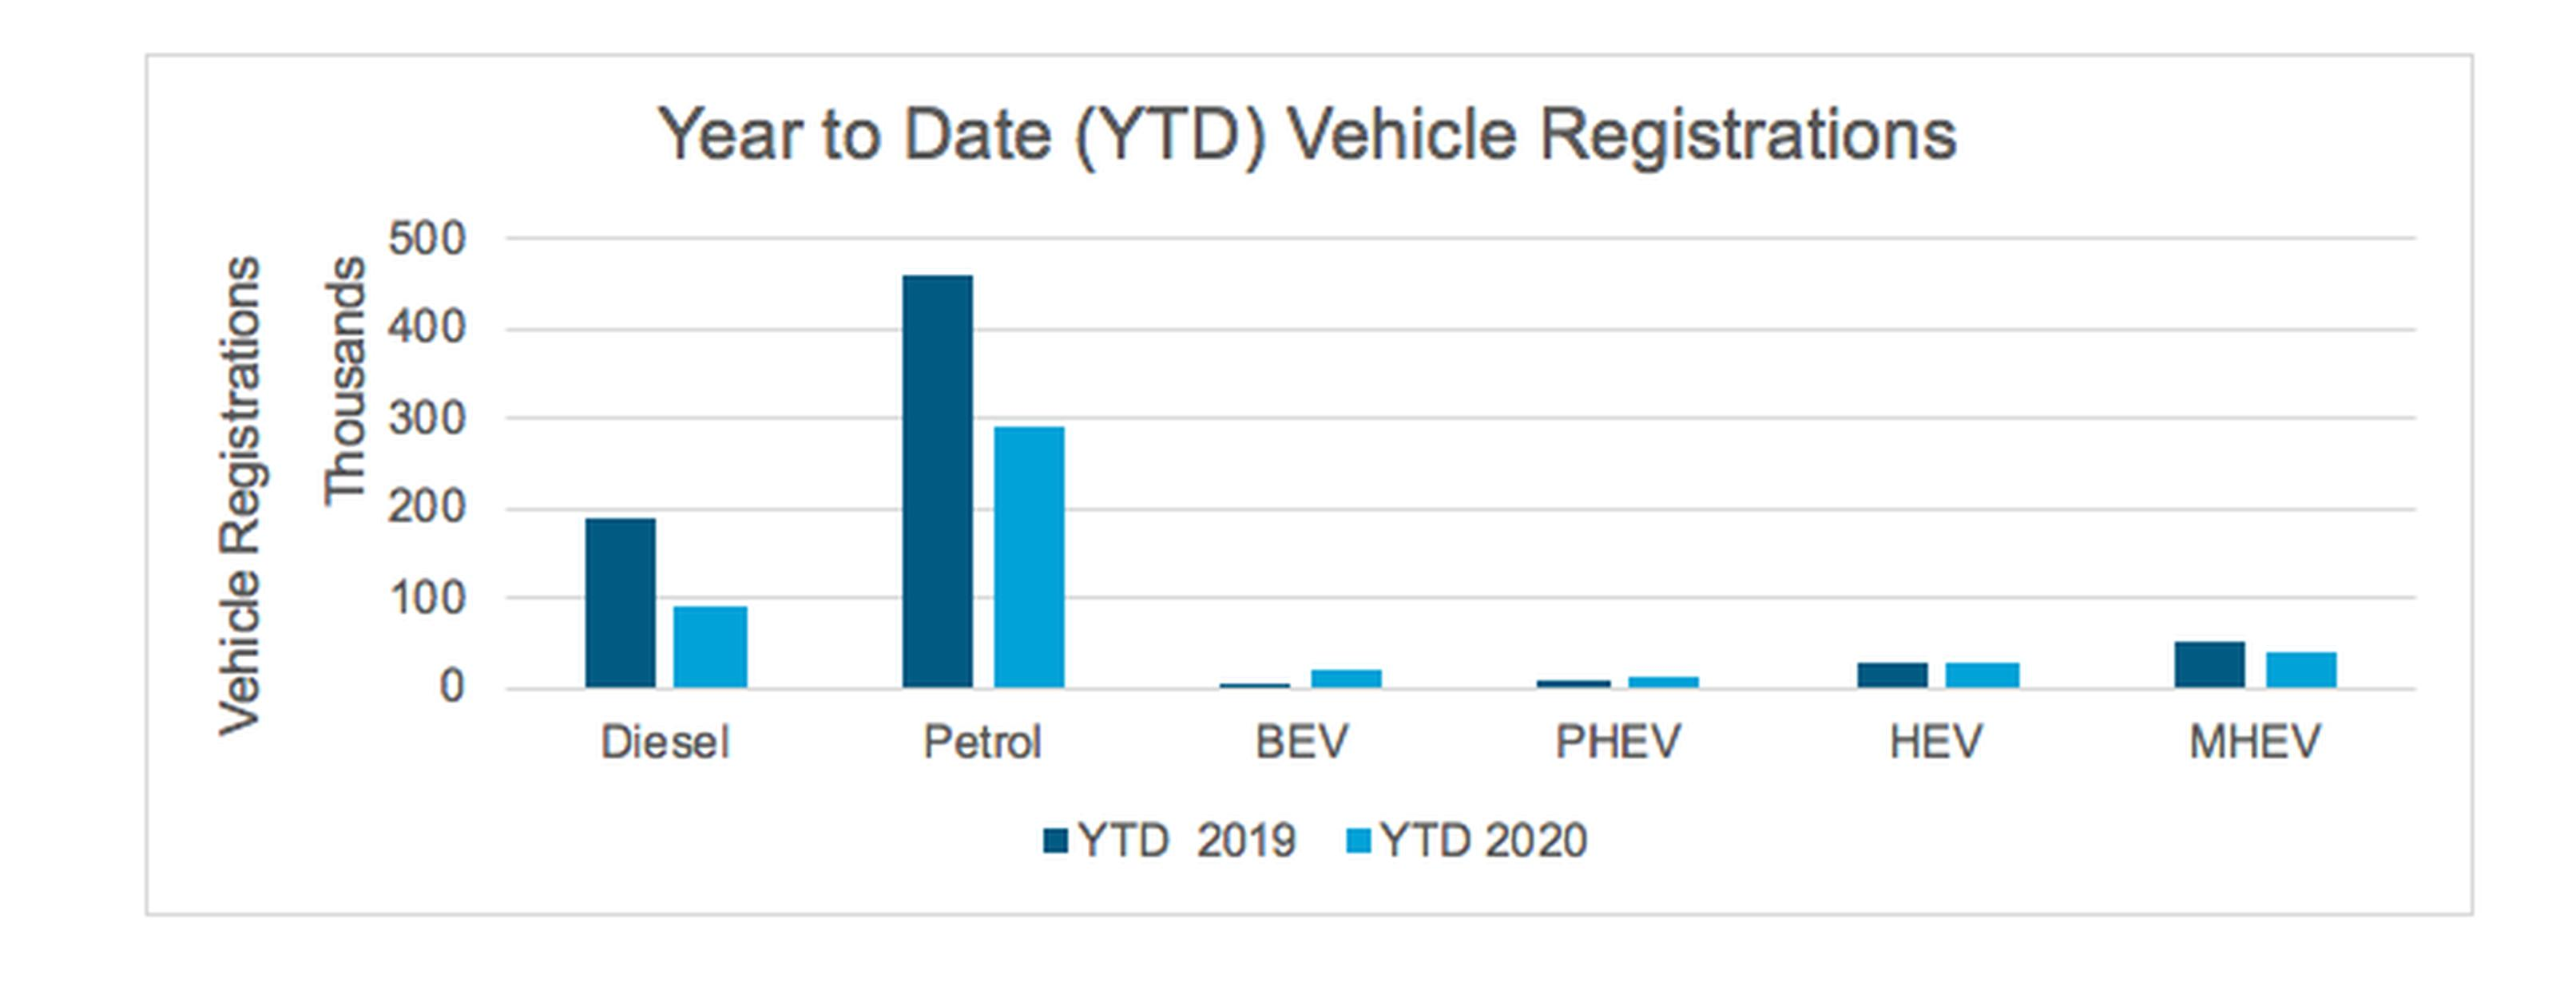 Year to date vehicle registrations